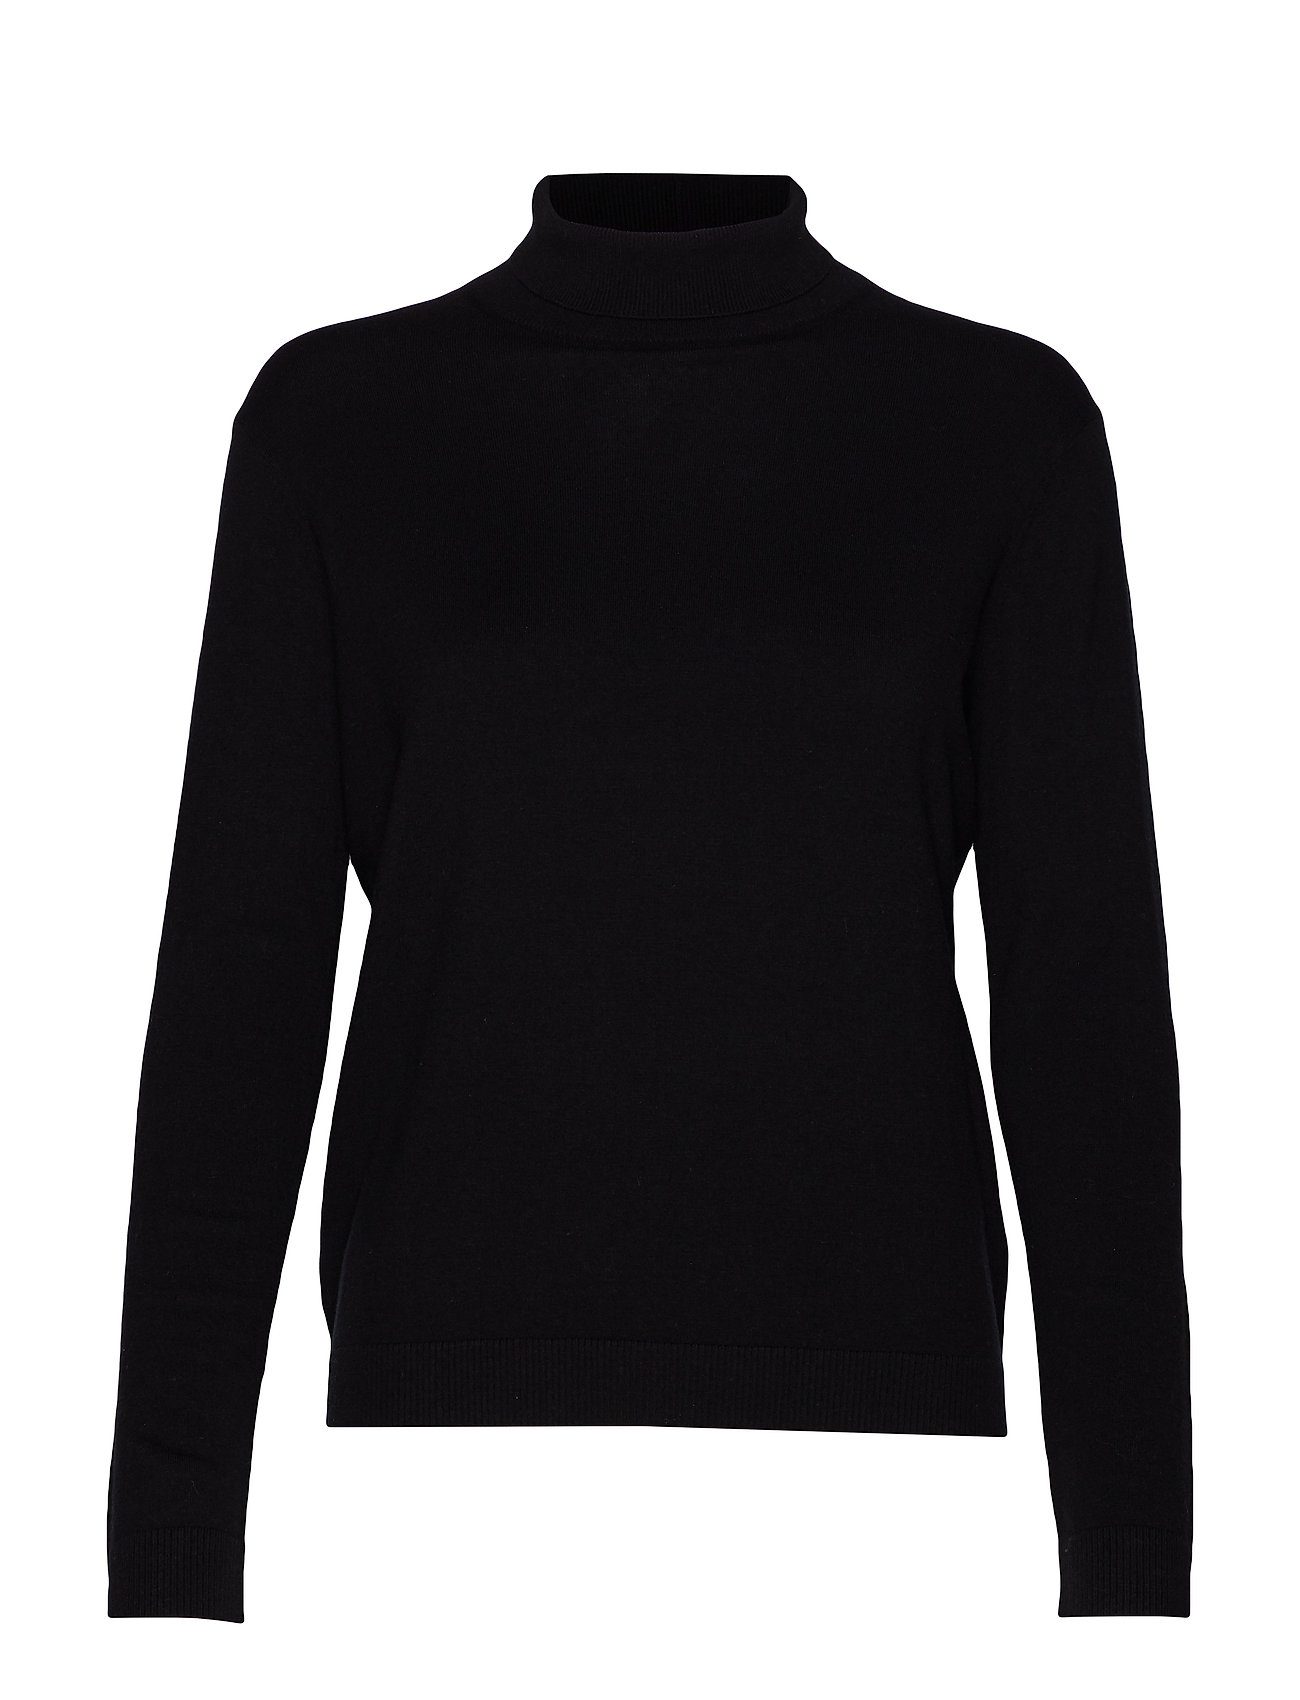 Weekend Max Mara FELUCA - BLACK